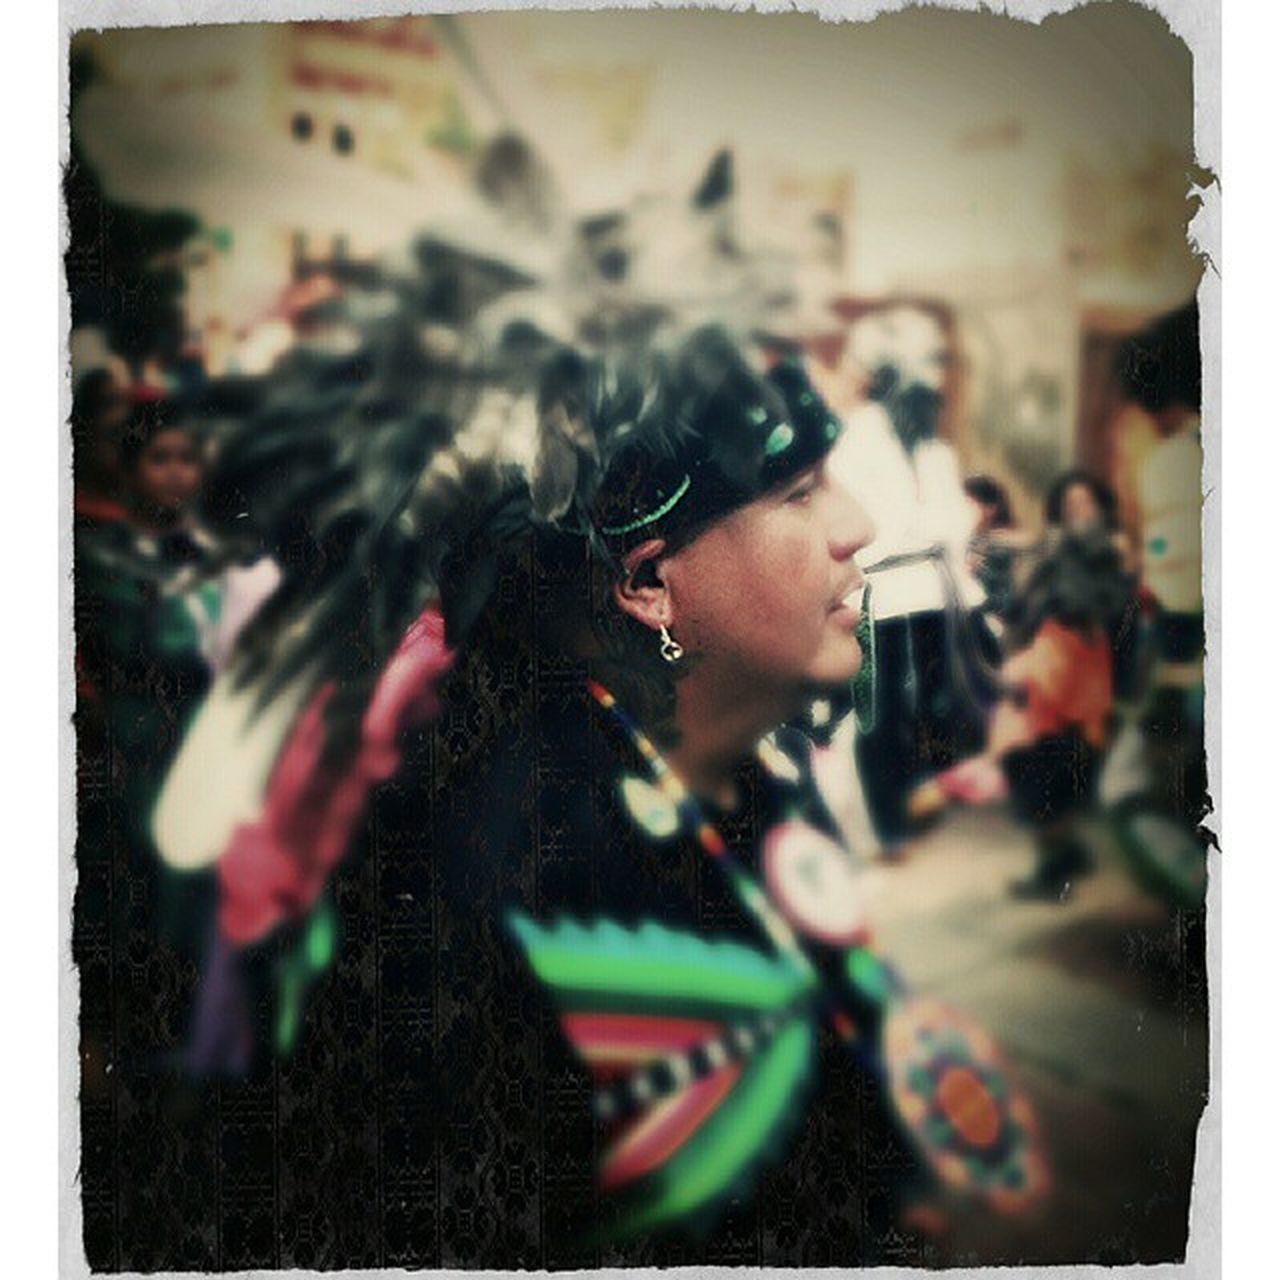 Native Nativefestival People Photography Native American Headdress Festivals Native Americans Eye4photography  RePicture Masculinity Capturing The Moment Native Pride